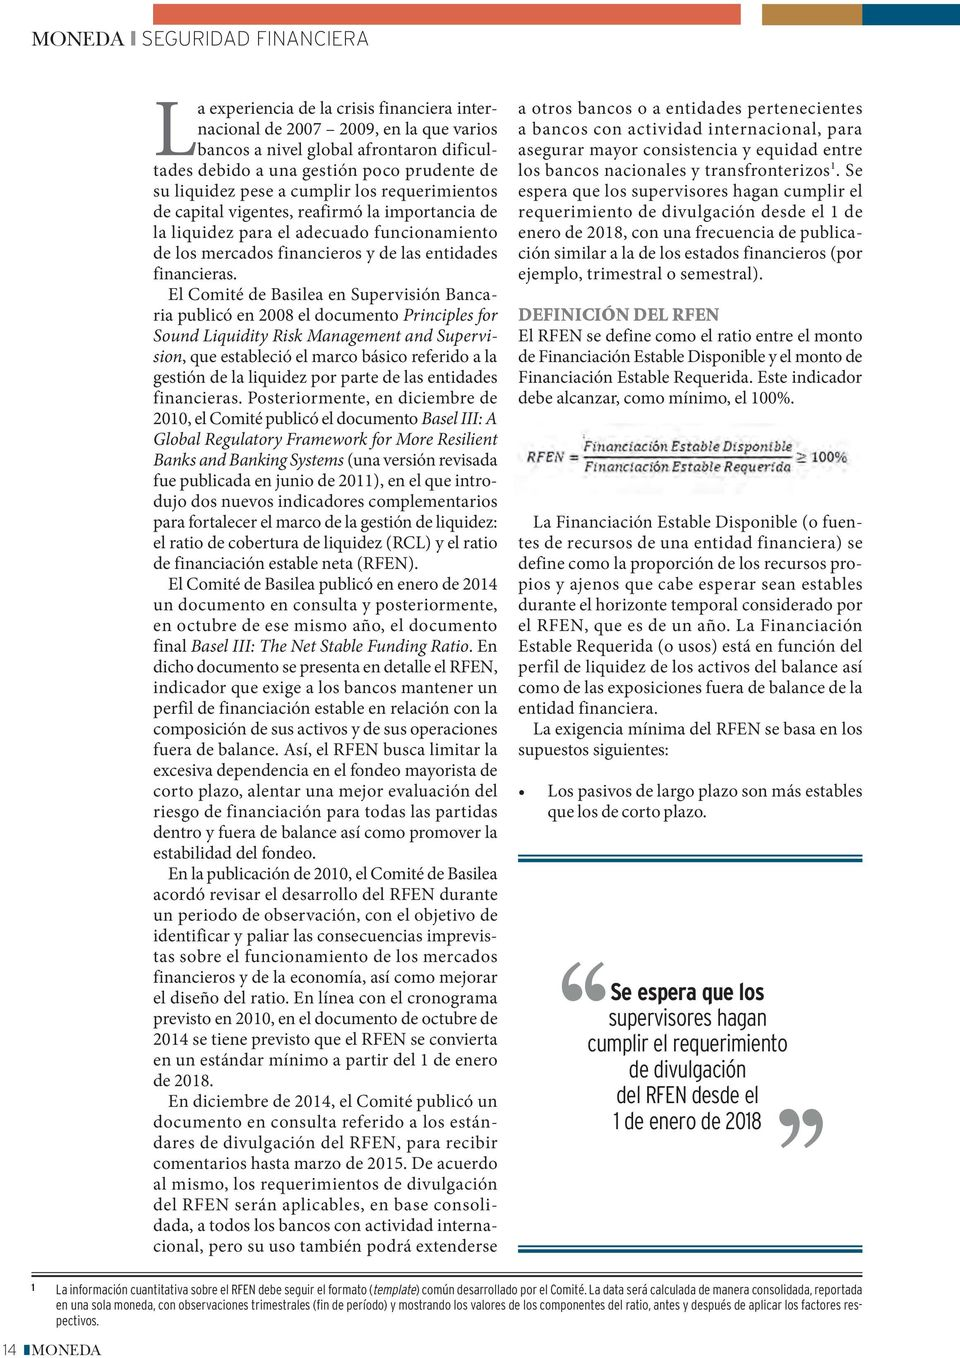 El Comité de Basilea en Supervisión Bancaria publicó en 2008 el documento Principles for Sound Liquidity Risk Management and Supervision, que estableció el marco básico referido a la gestión de la